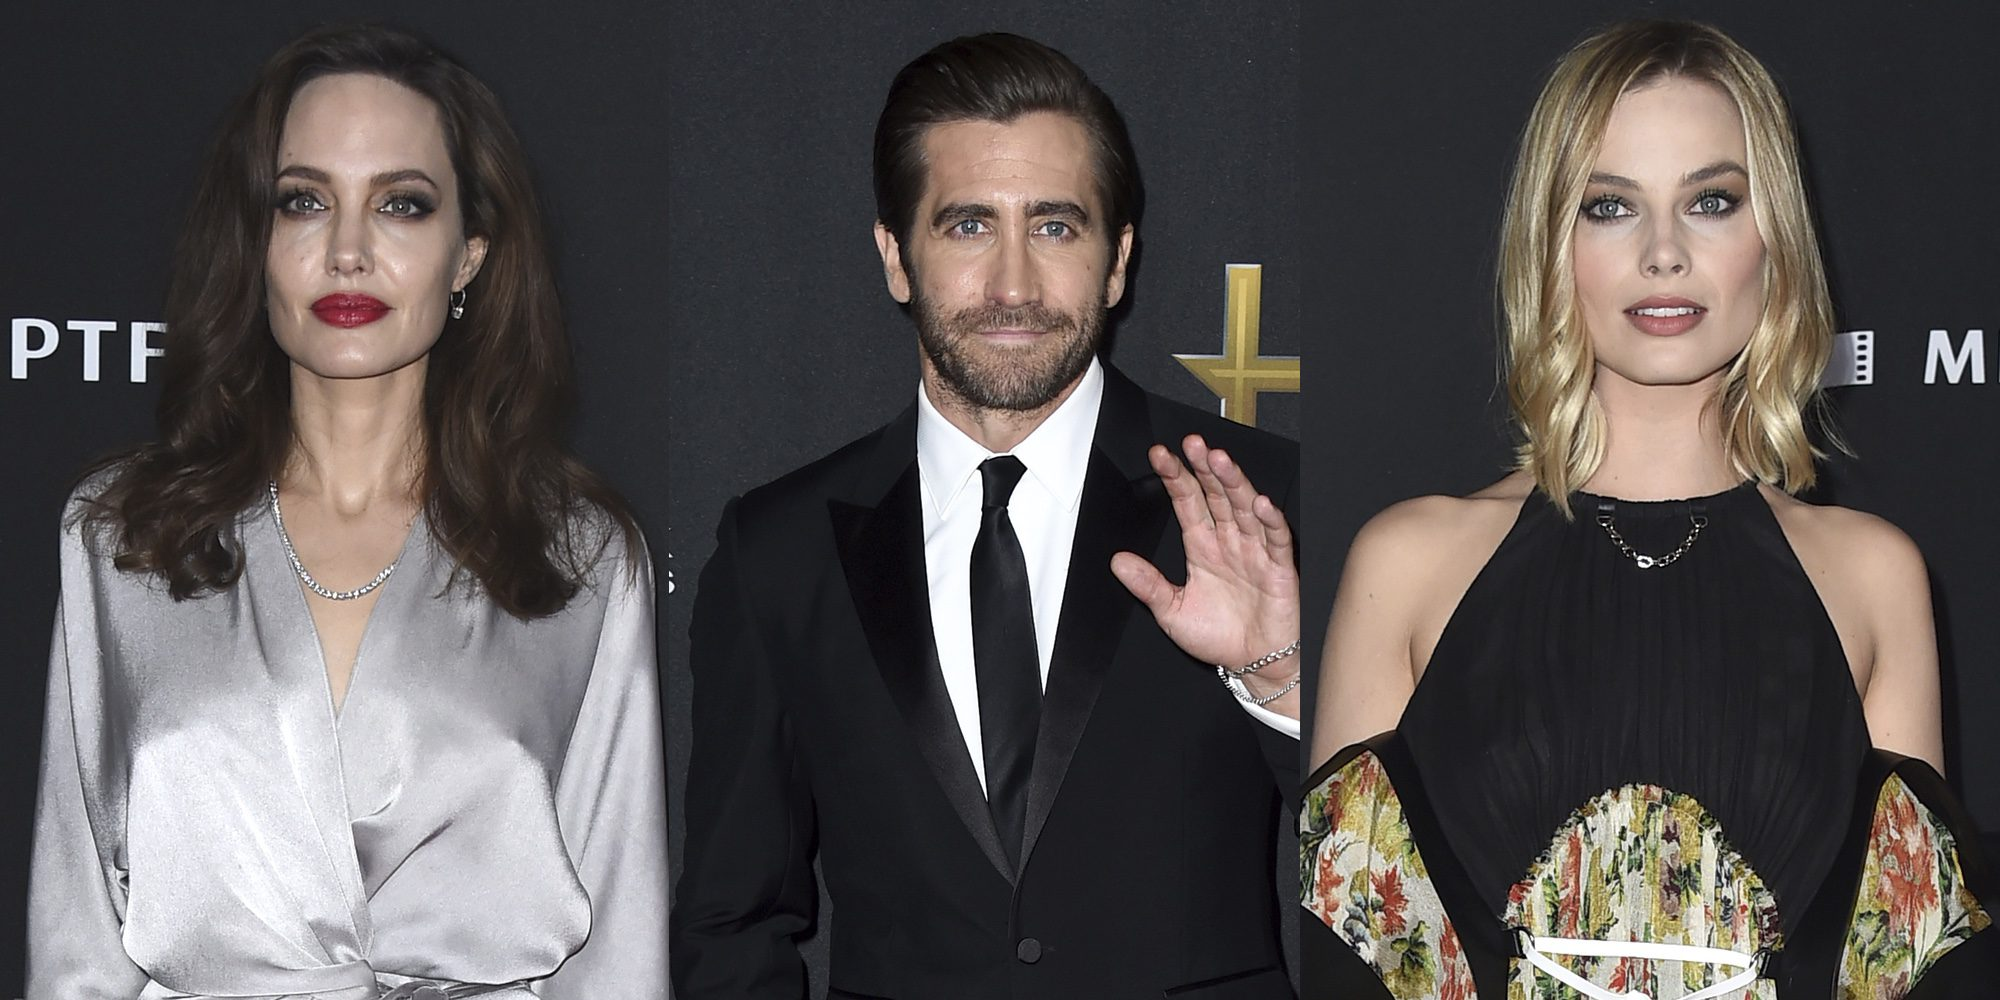 Angelina Jolie, Jake Gyllenhaal o Margot Robbie brillaron con luz propia en los Hollywood Film Awards 2017